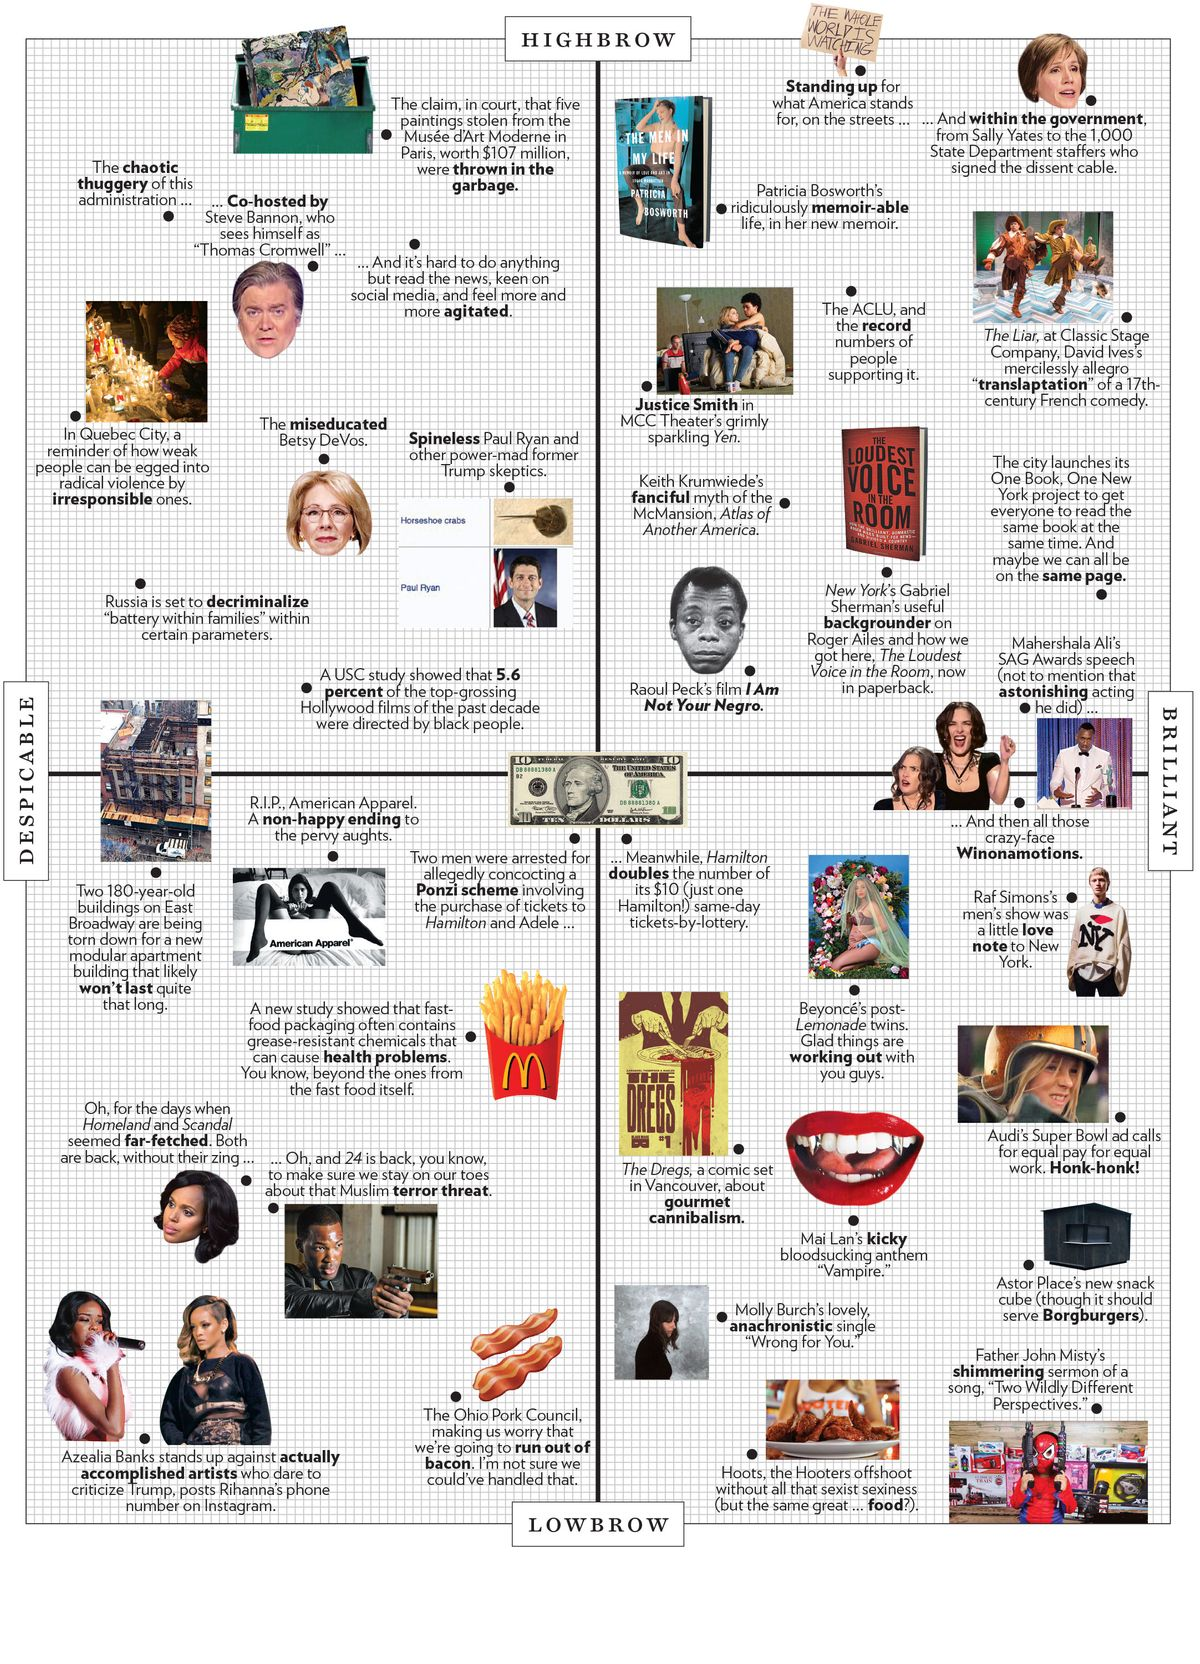 The Approval Matrix - Week of February 6, 2017 -- New York